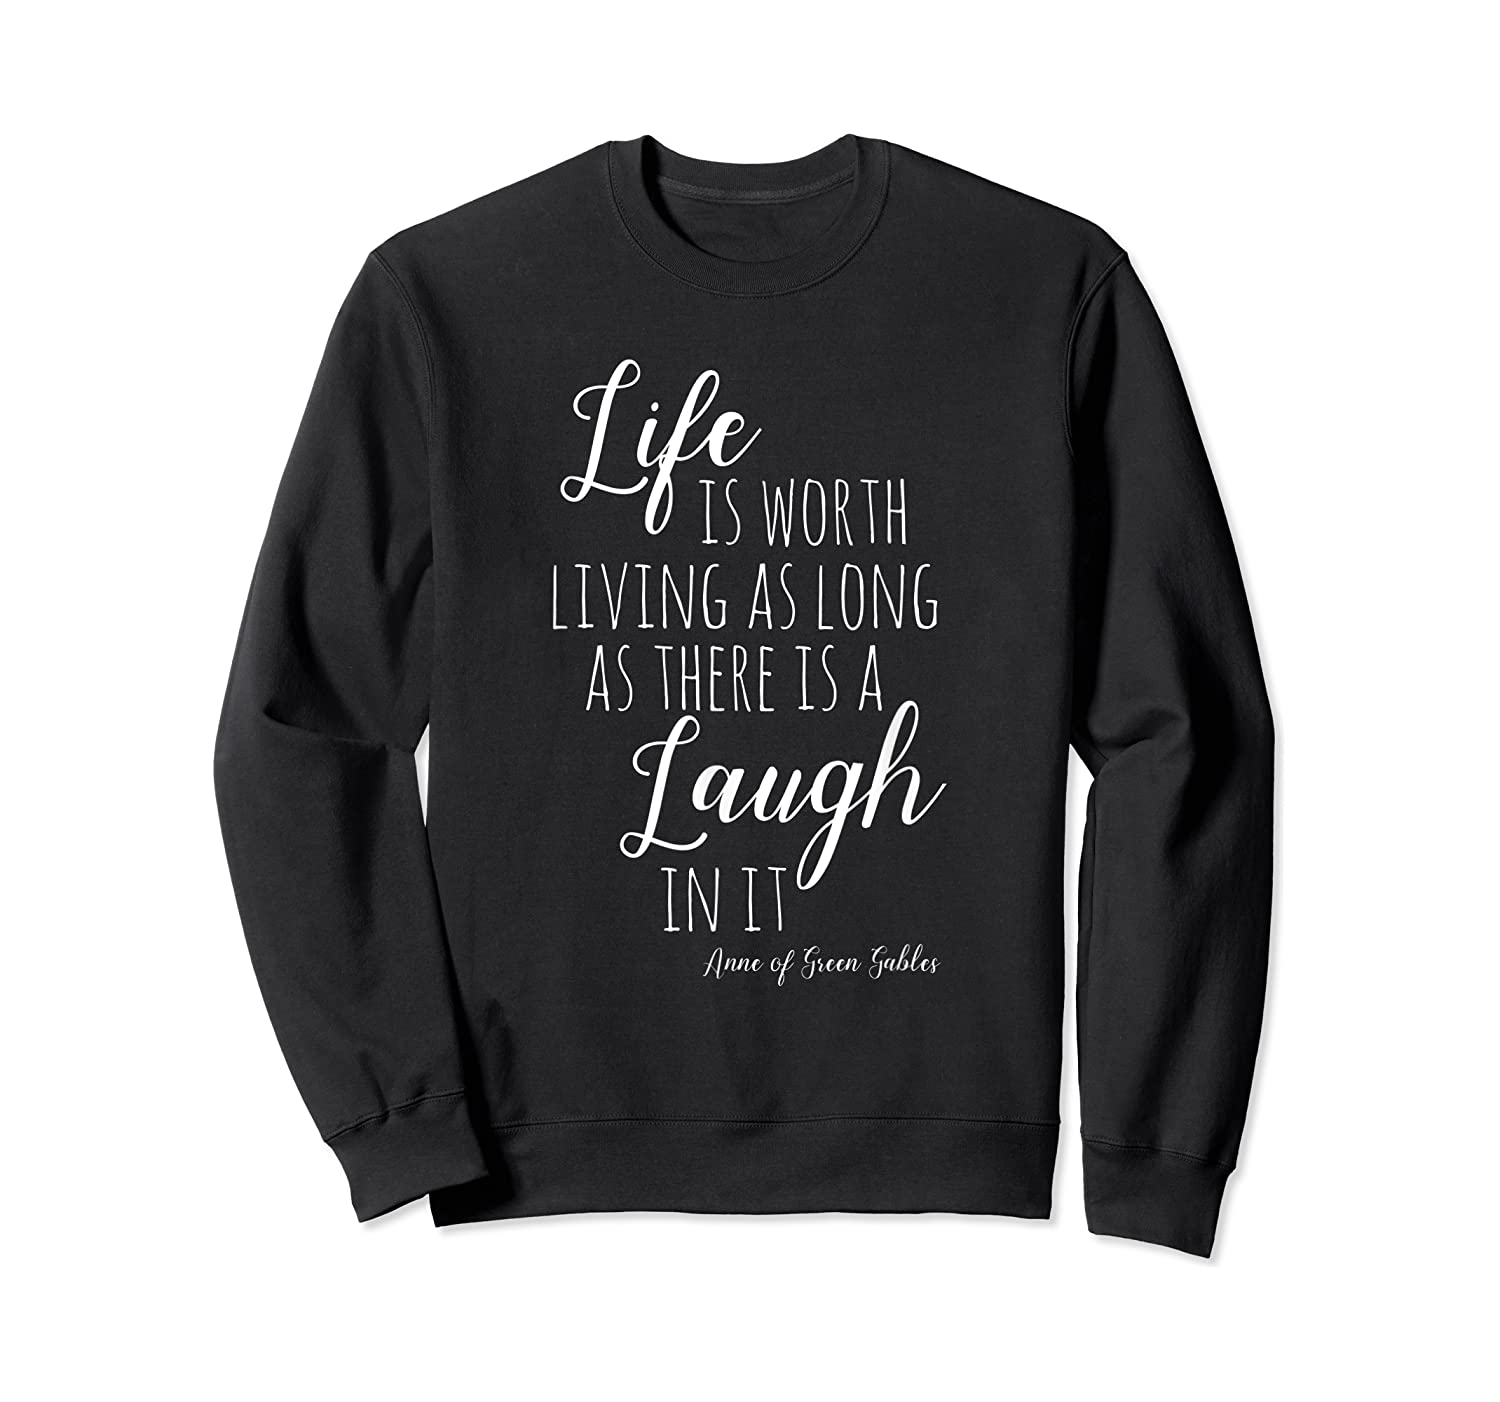 Anne With An E T-shirt, Anne Of Green Gables Quote Shirt T-shirt Crewneck Sweater